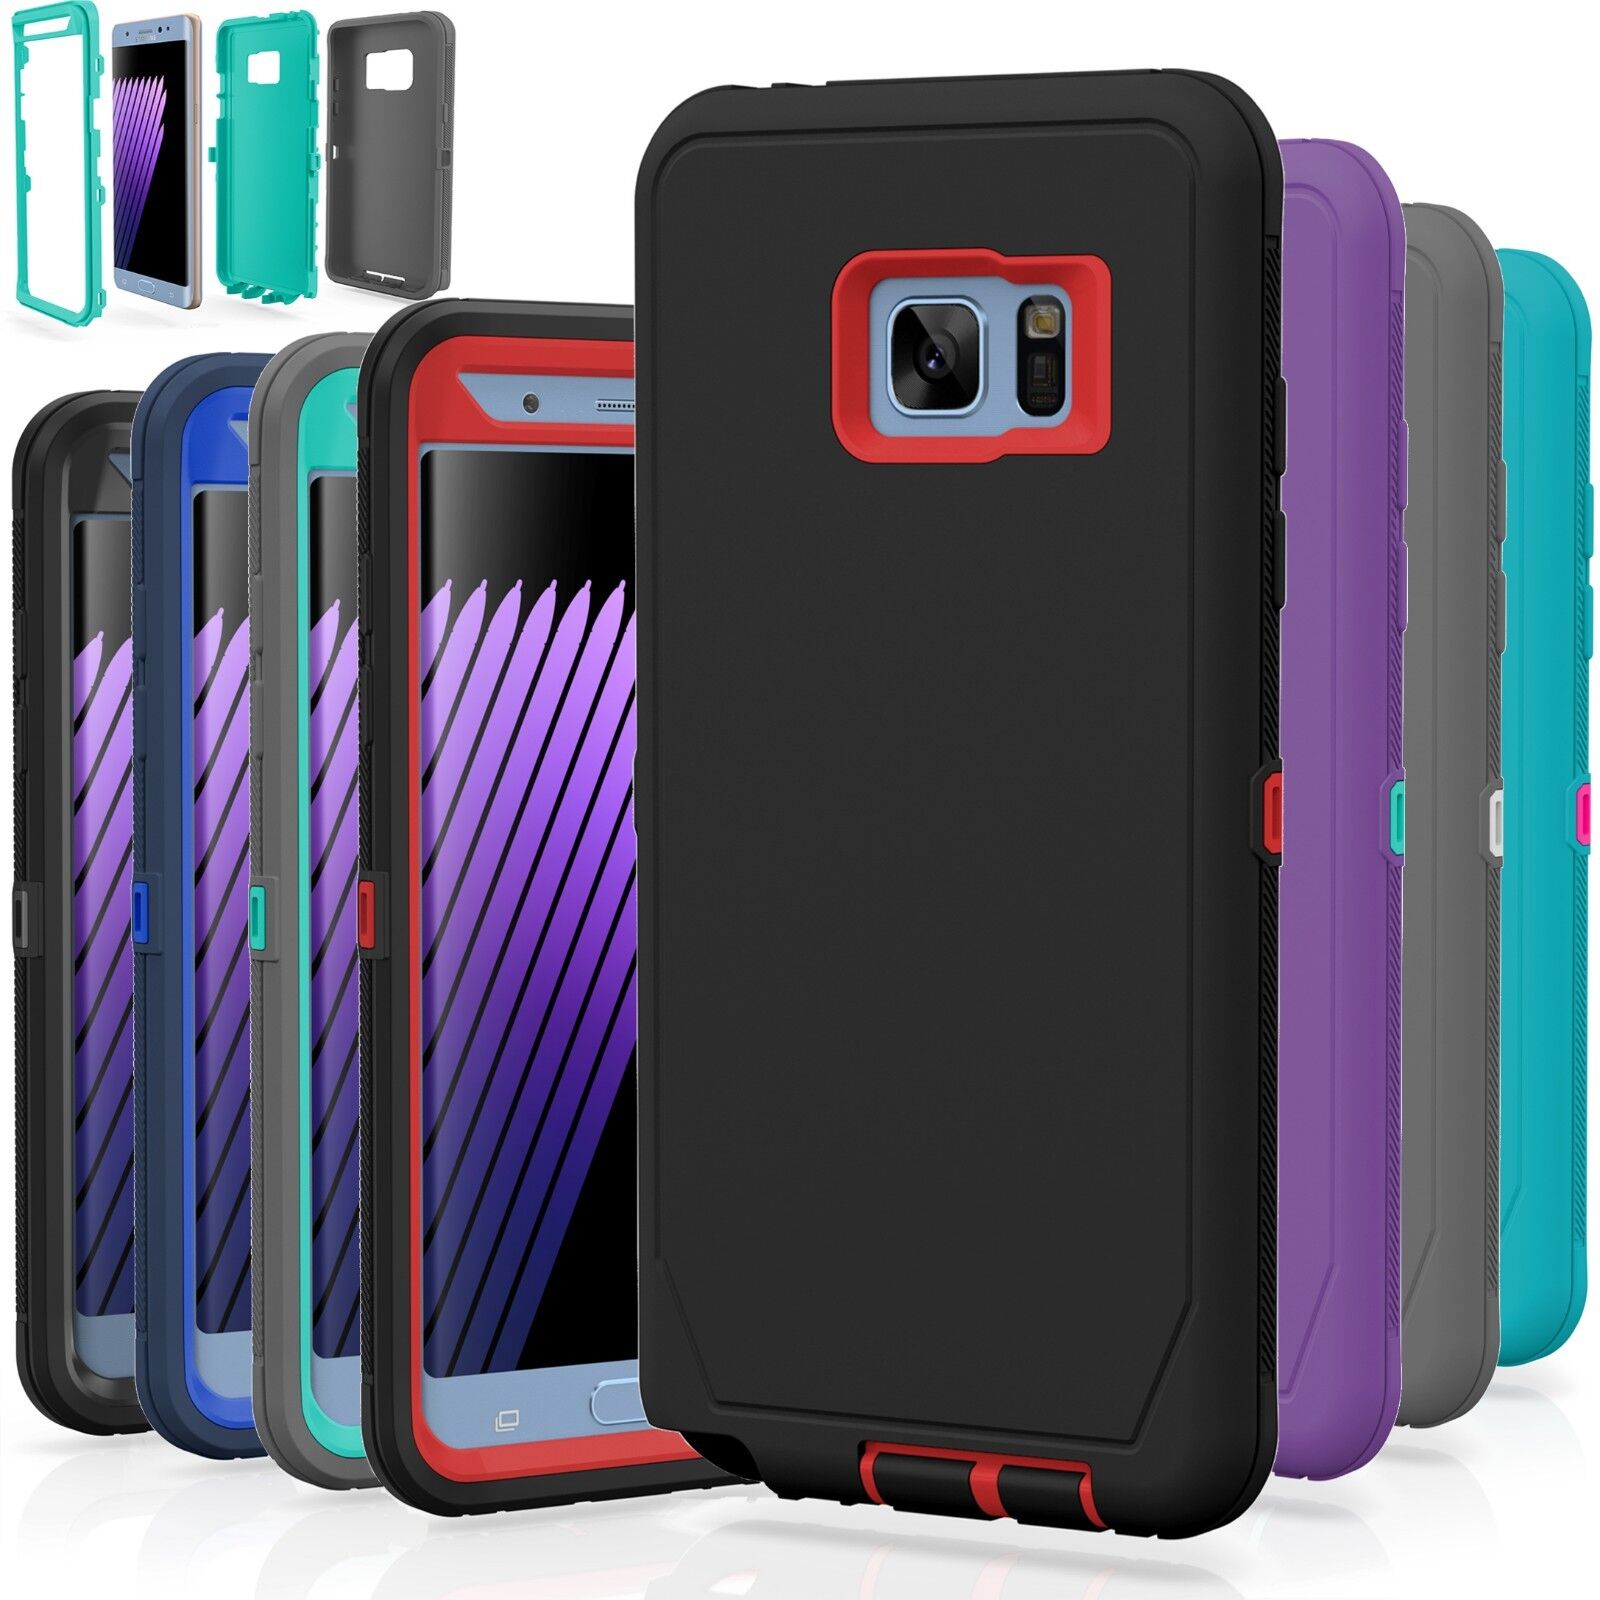 Samsung Galaxy S7 / S7 Edge Case Cover Shockproof Hybrid Har